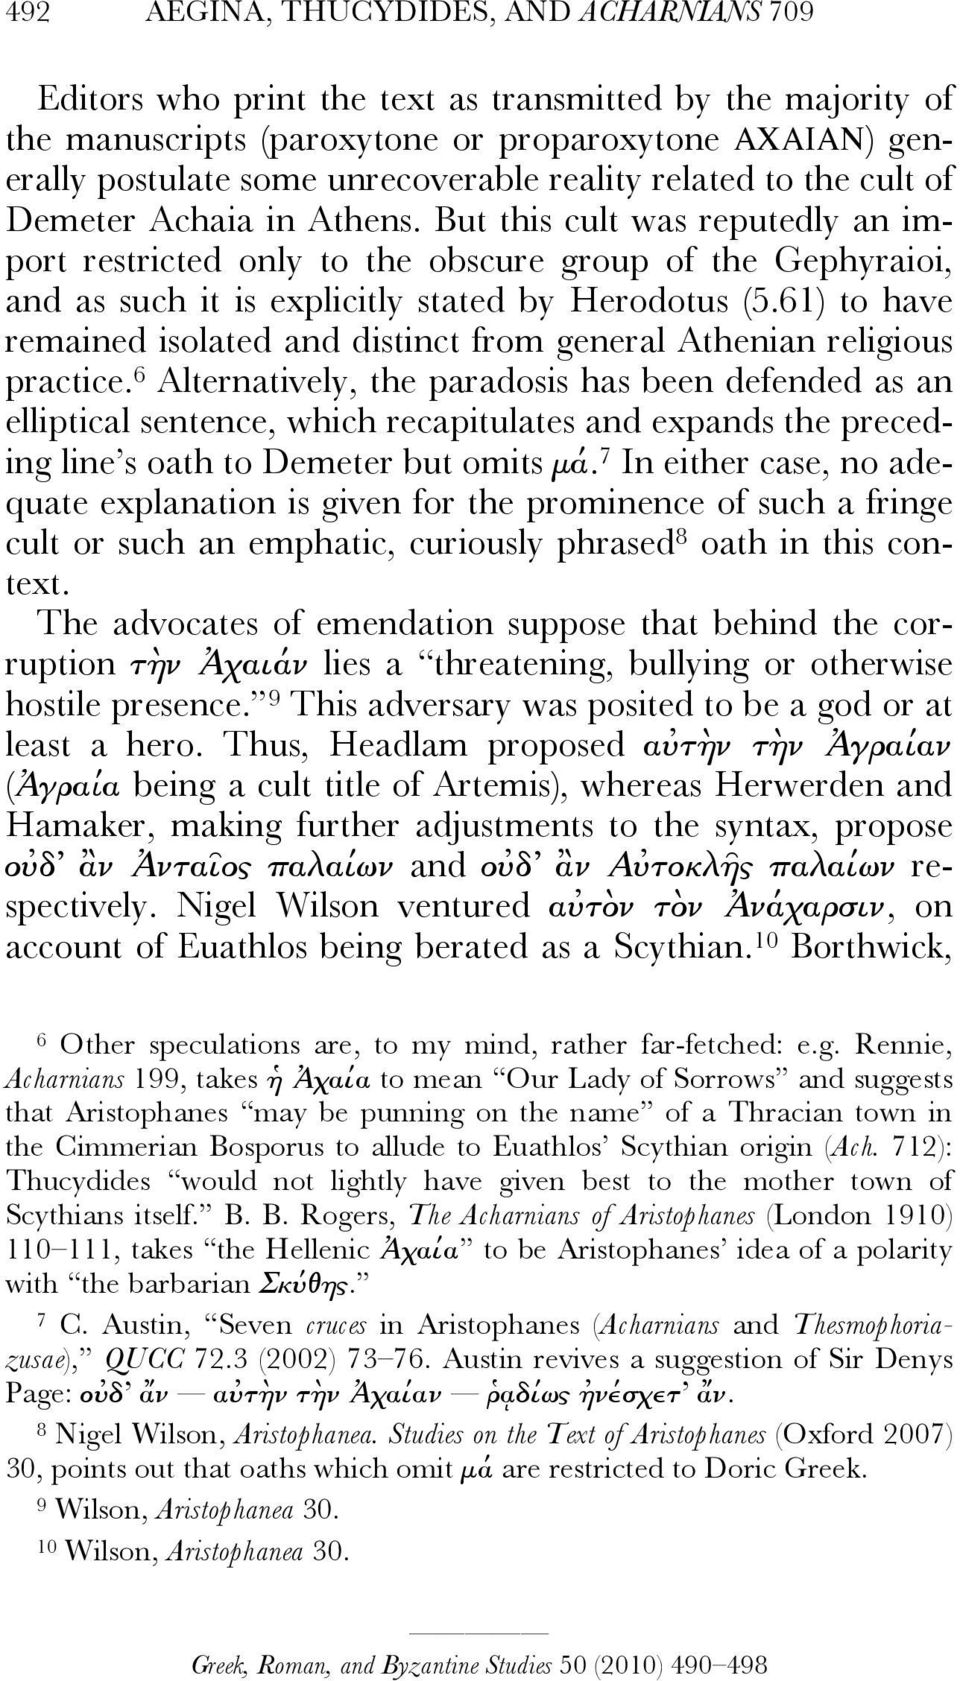 But this cult was reputedly an import restricted only to the obscure group of the Gephyraioi, and as such it is explicitly stated by Herodotus (5.